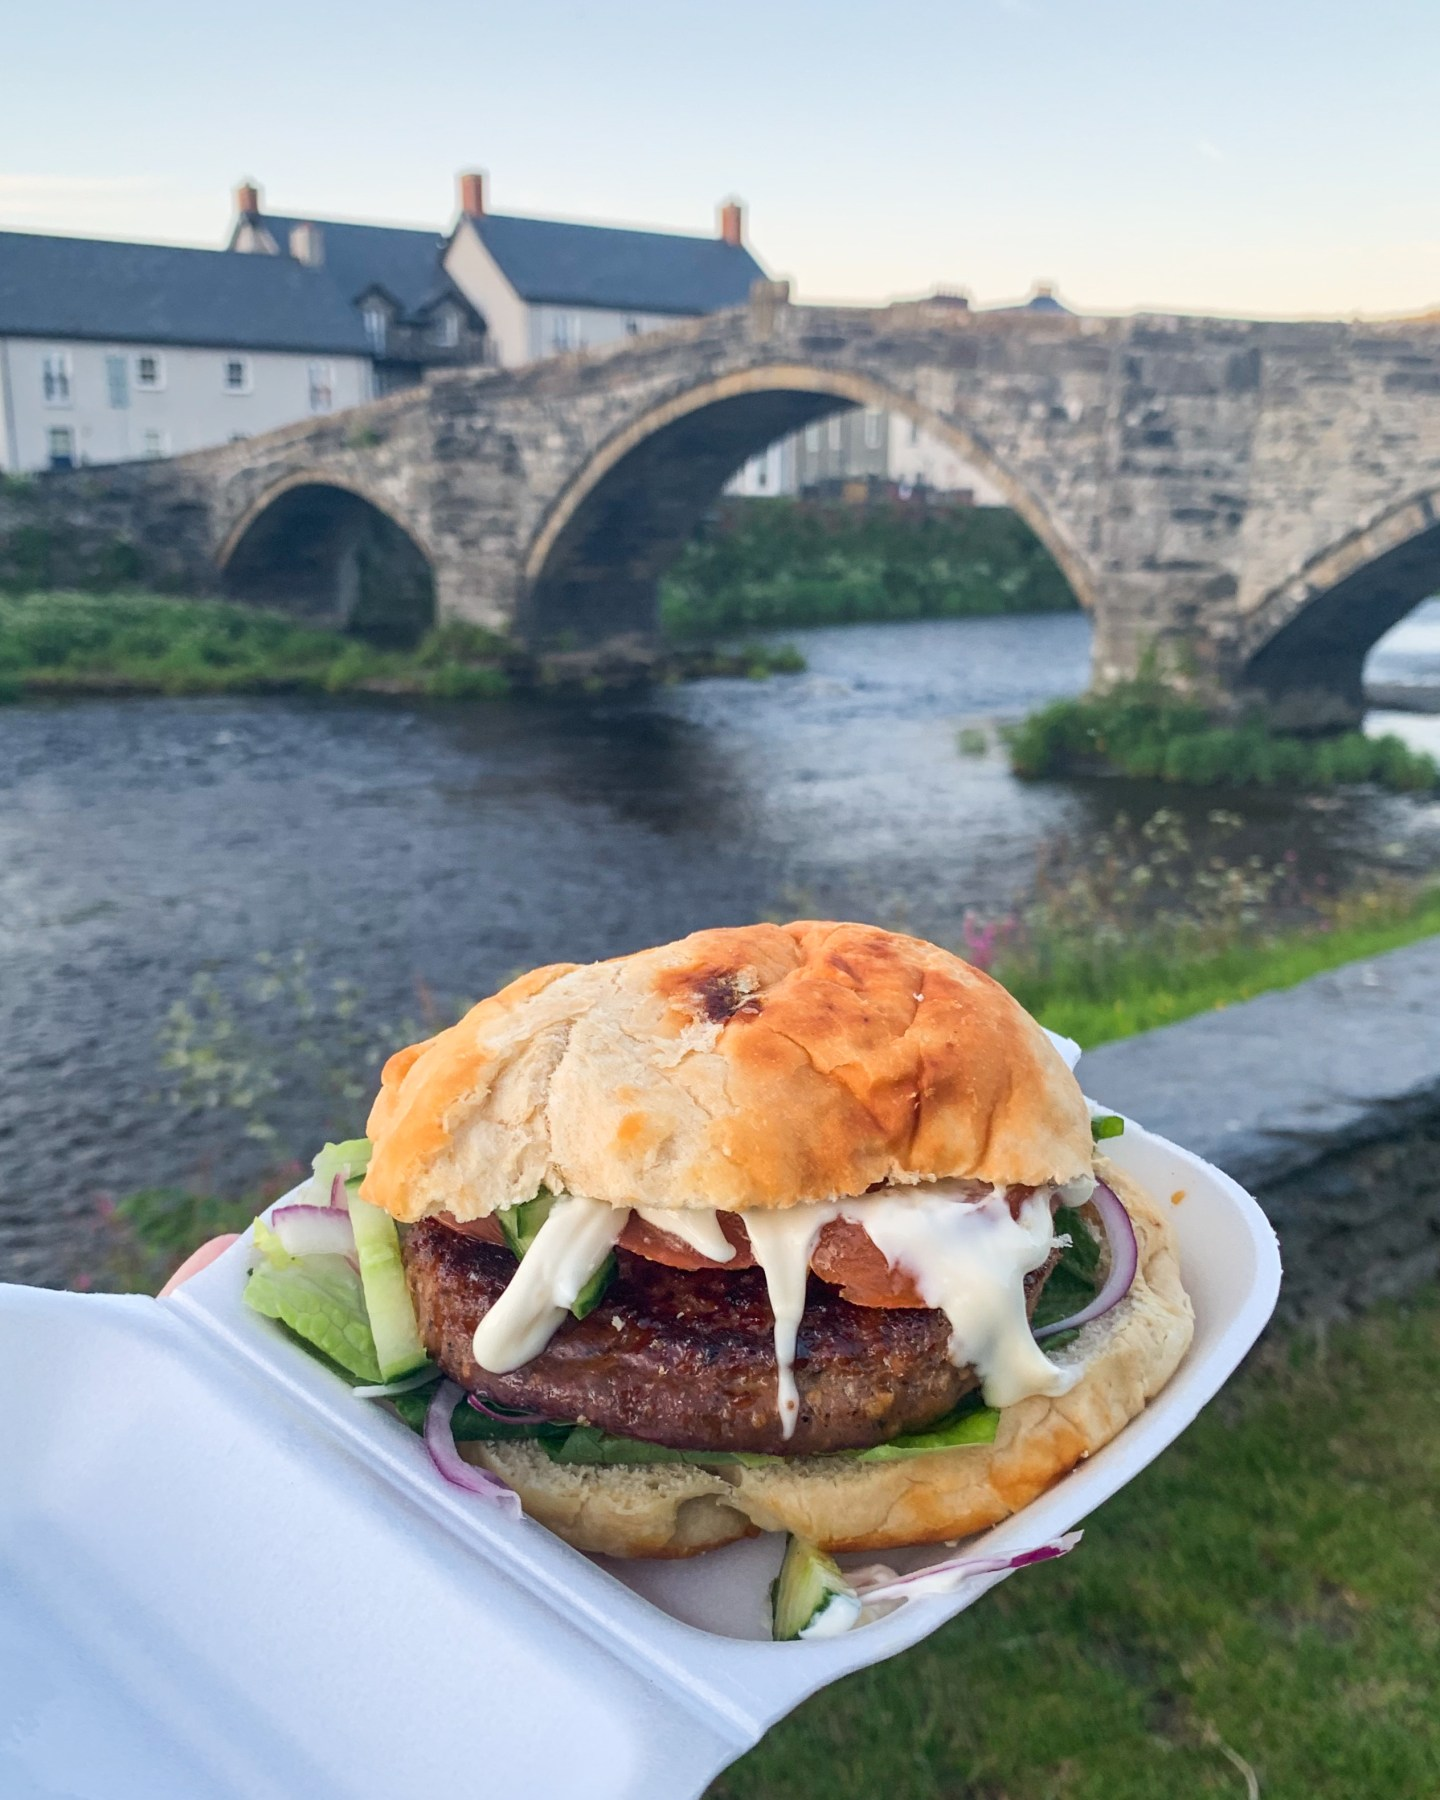 places-to-eat-in-Llanwrst.jpg